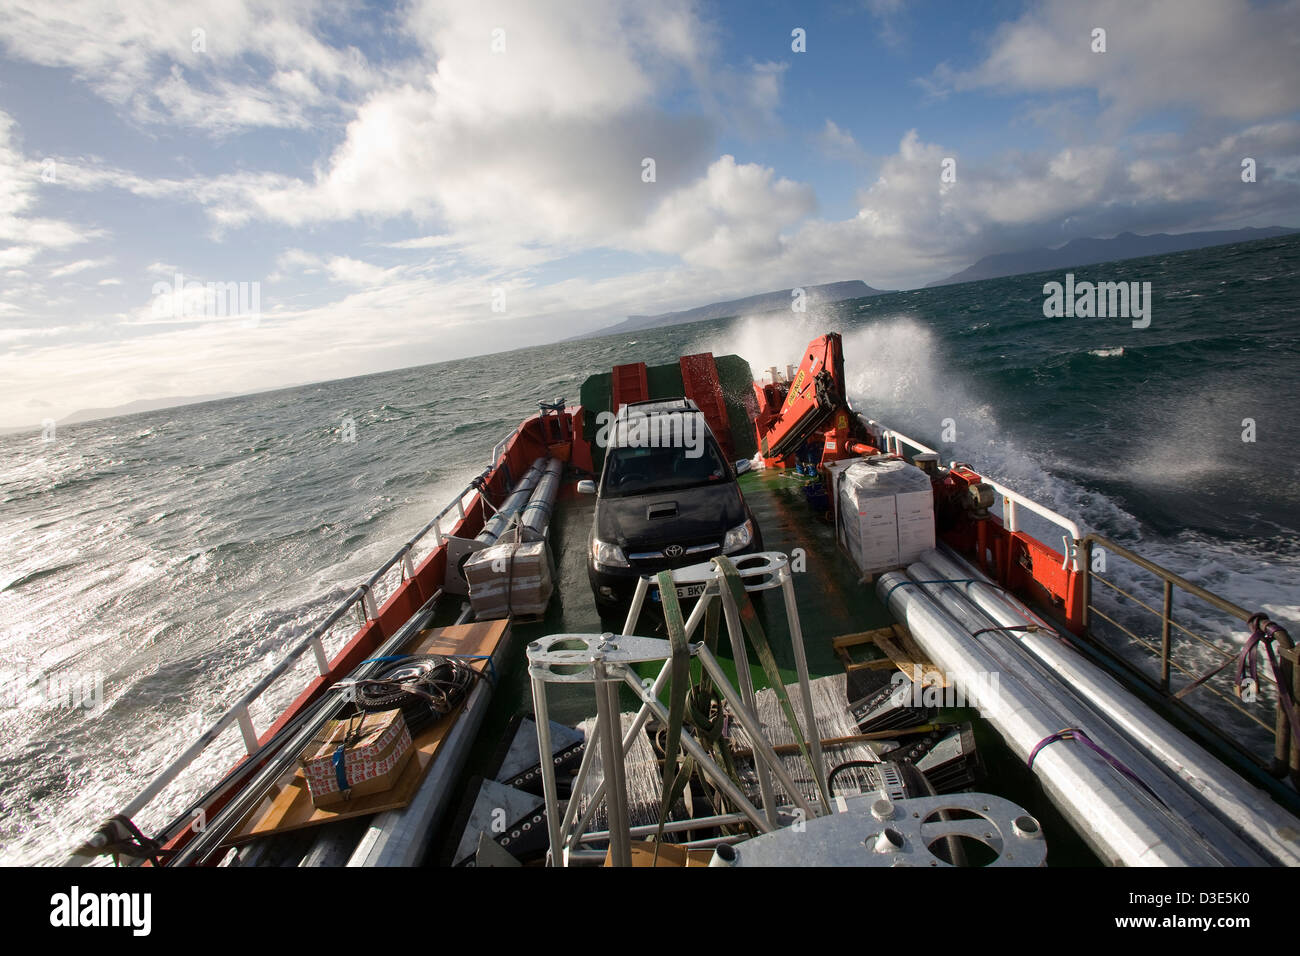 MALLAIG, SCOTLAND - 29TH OCTOBER 2007: Wind turbine parts are carried on the 'Spanish John' landing craft - Stock Image